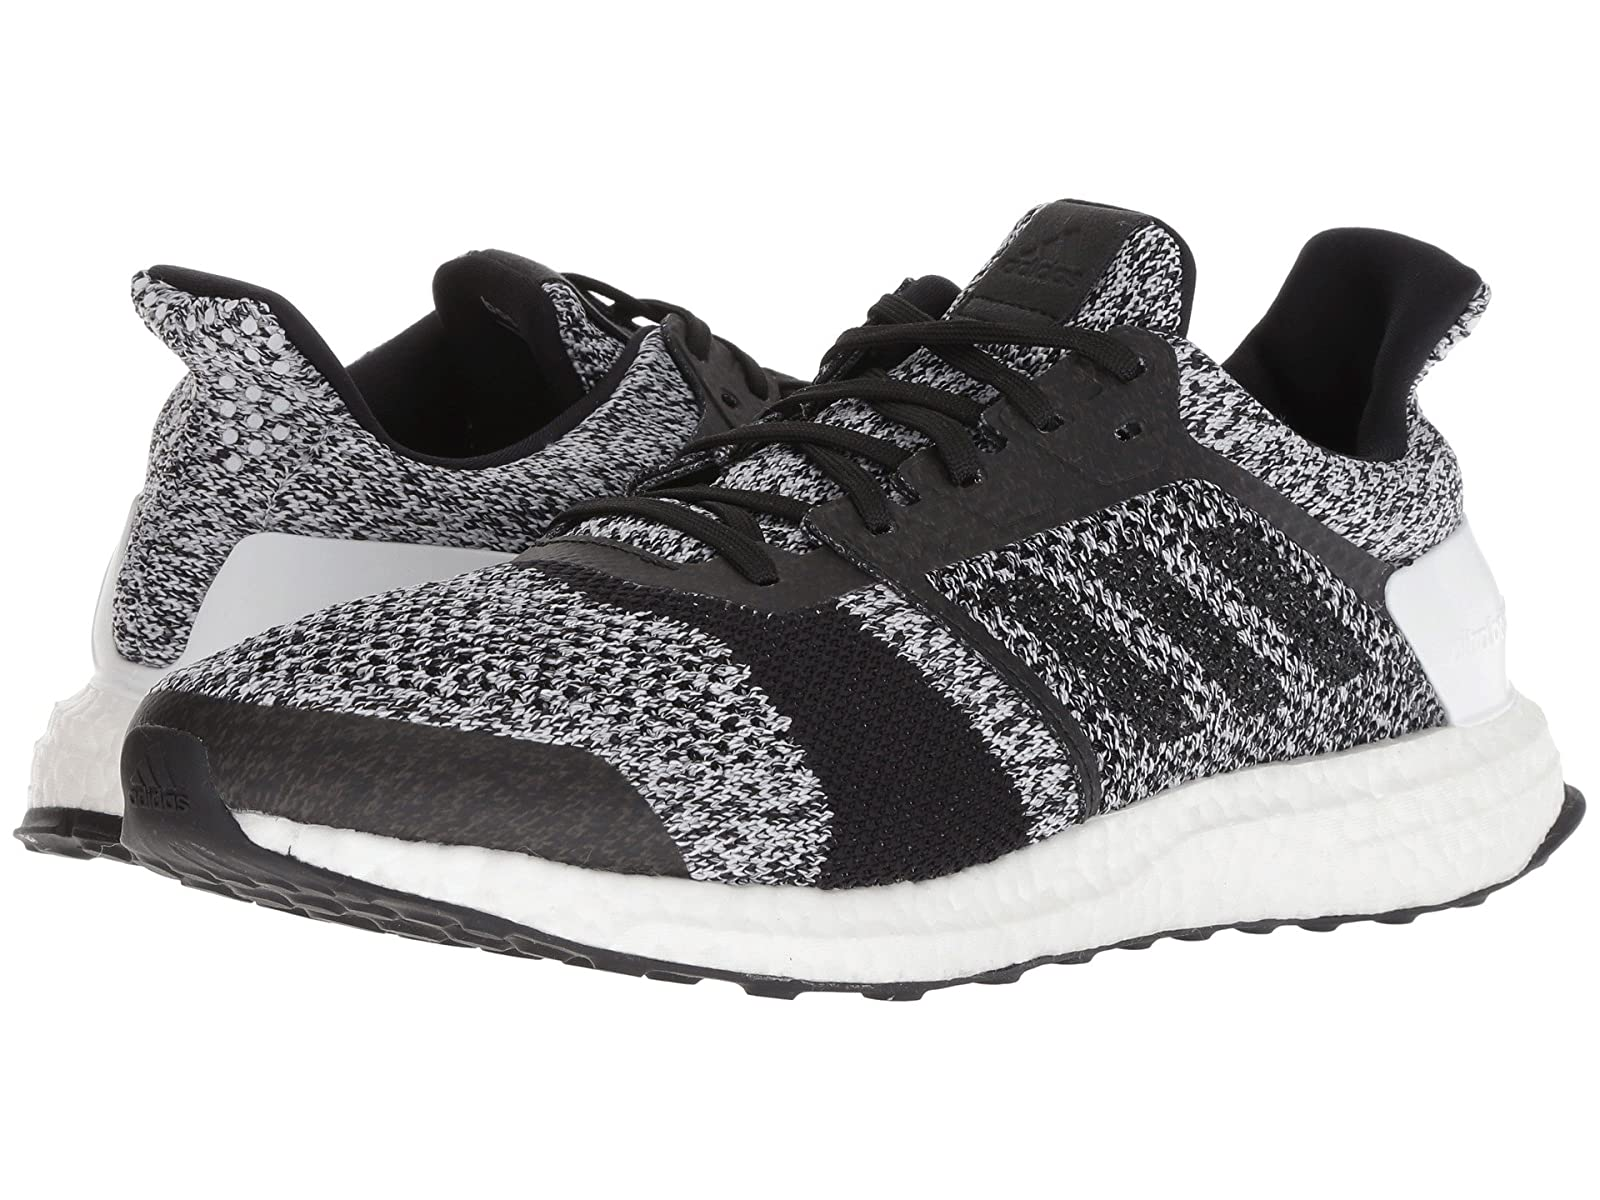 adidas Running UltraBOOST STAtmospheric grades have affordable shoes